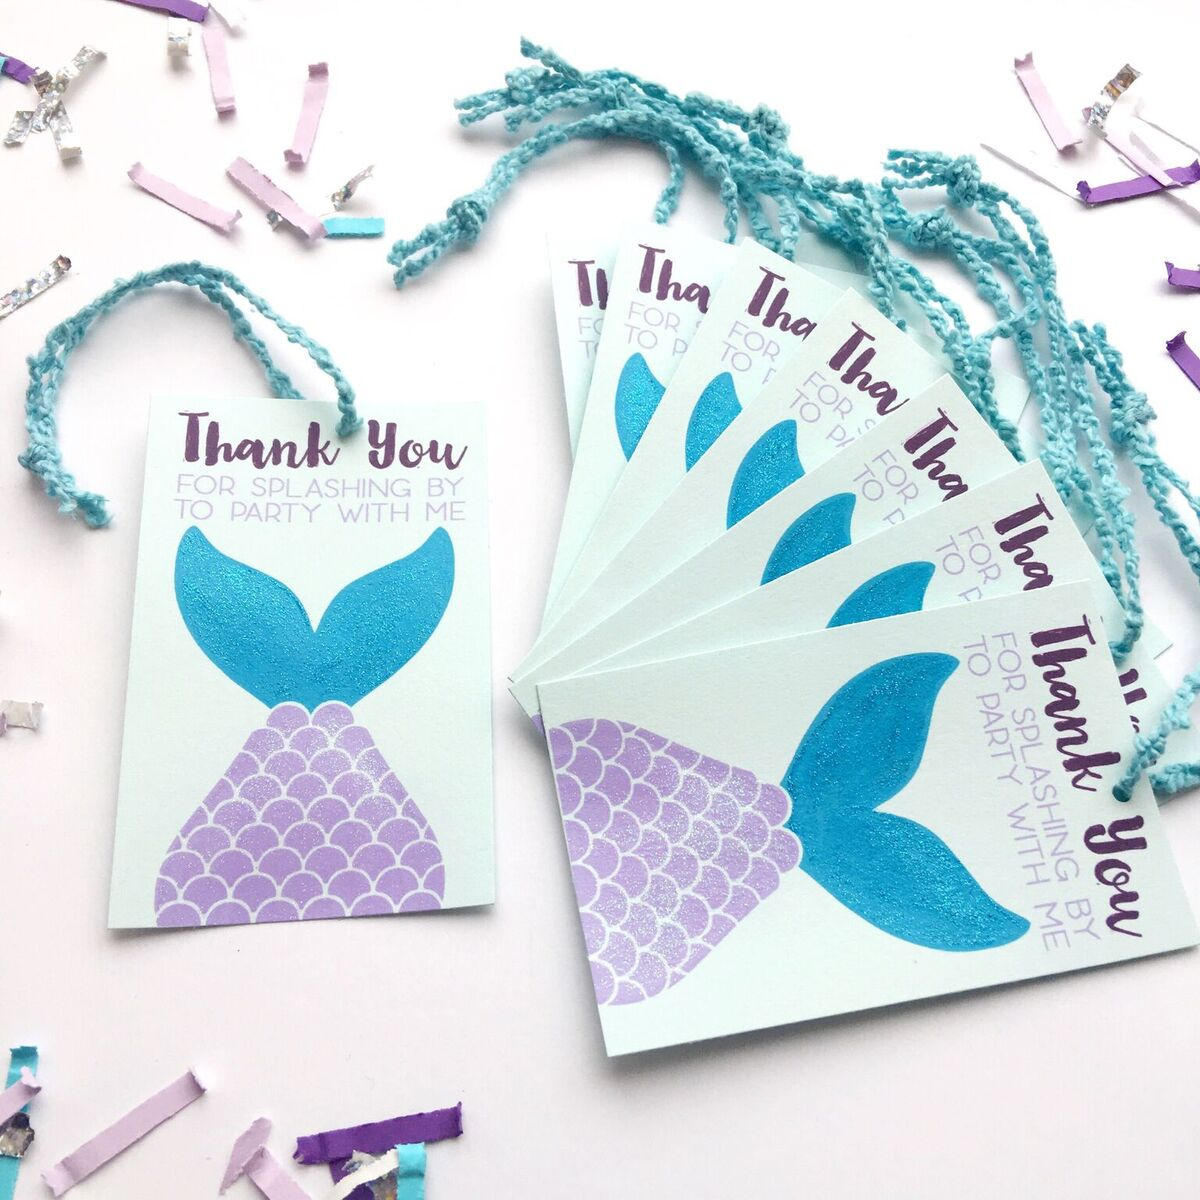 Mermaid Party Favor Tags - thank you for splashing by to party with me